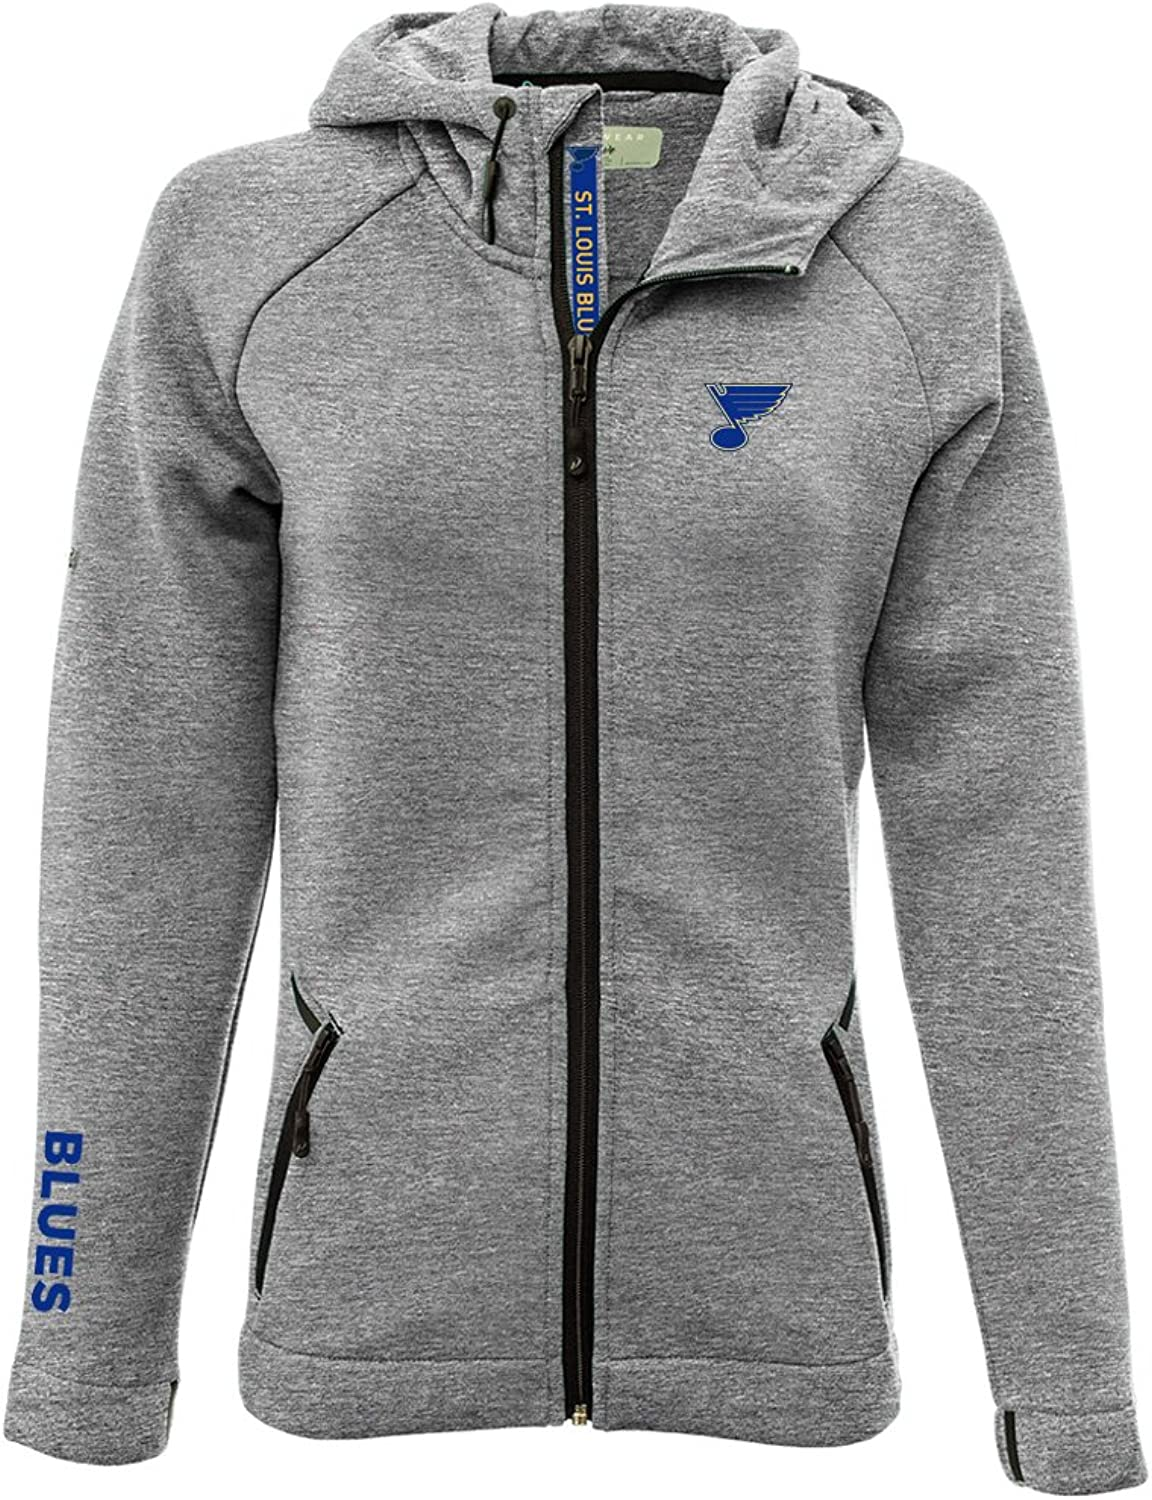 Levelwear LEY9R Women's Motion Insignia Bold Full Zip Hooded Jacket, Heather Pebble, Small